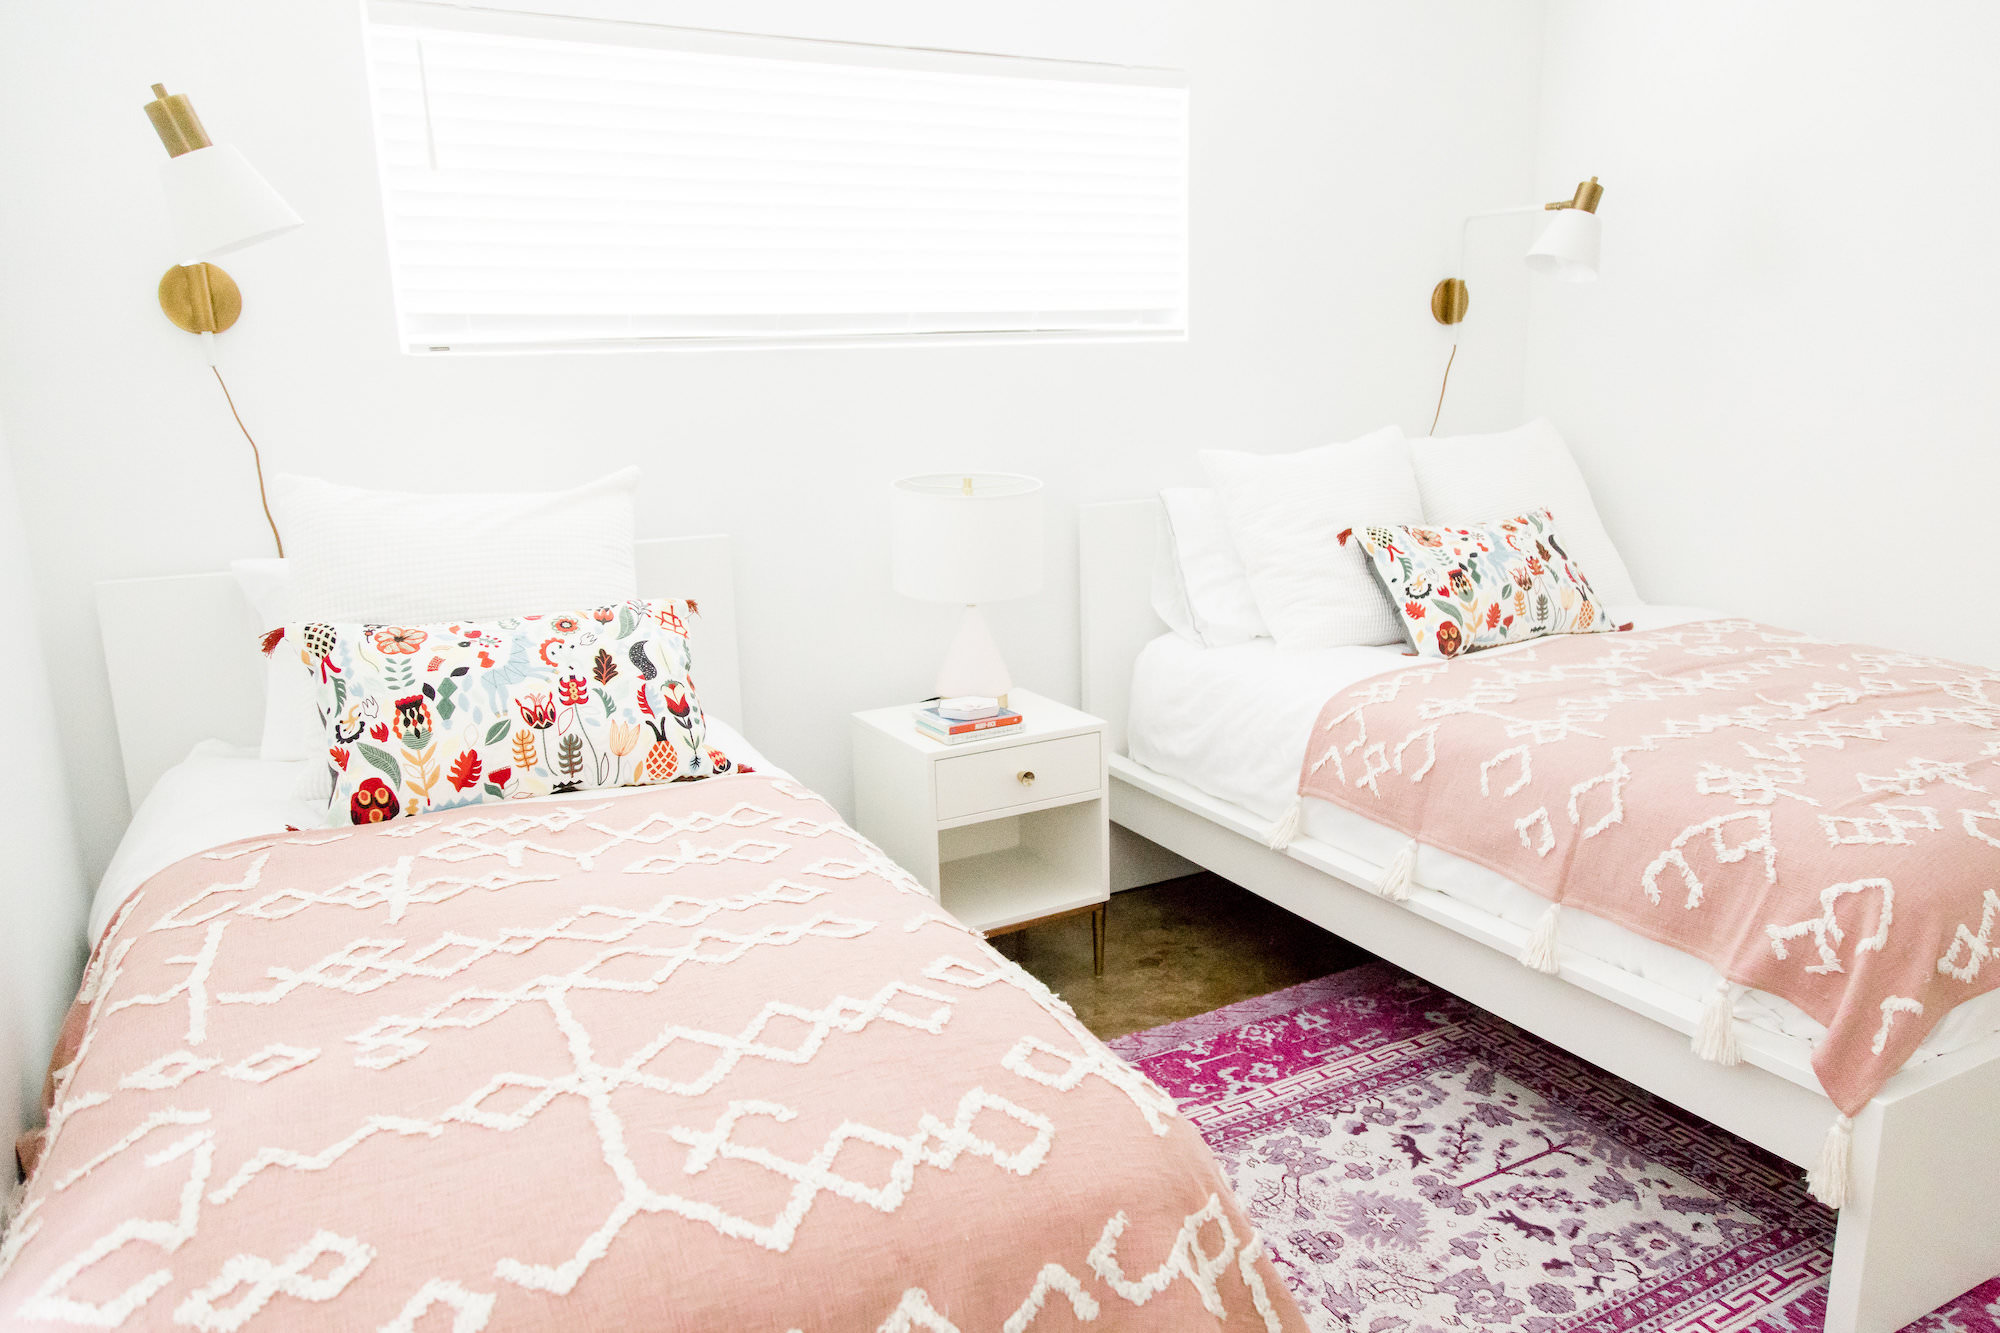 mid-century-modern-vacation-rental-bedroom-twin-beds-white-pink-web-res.jpg